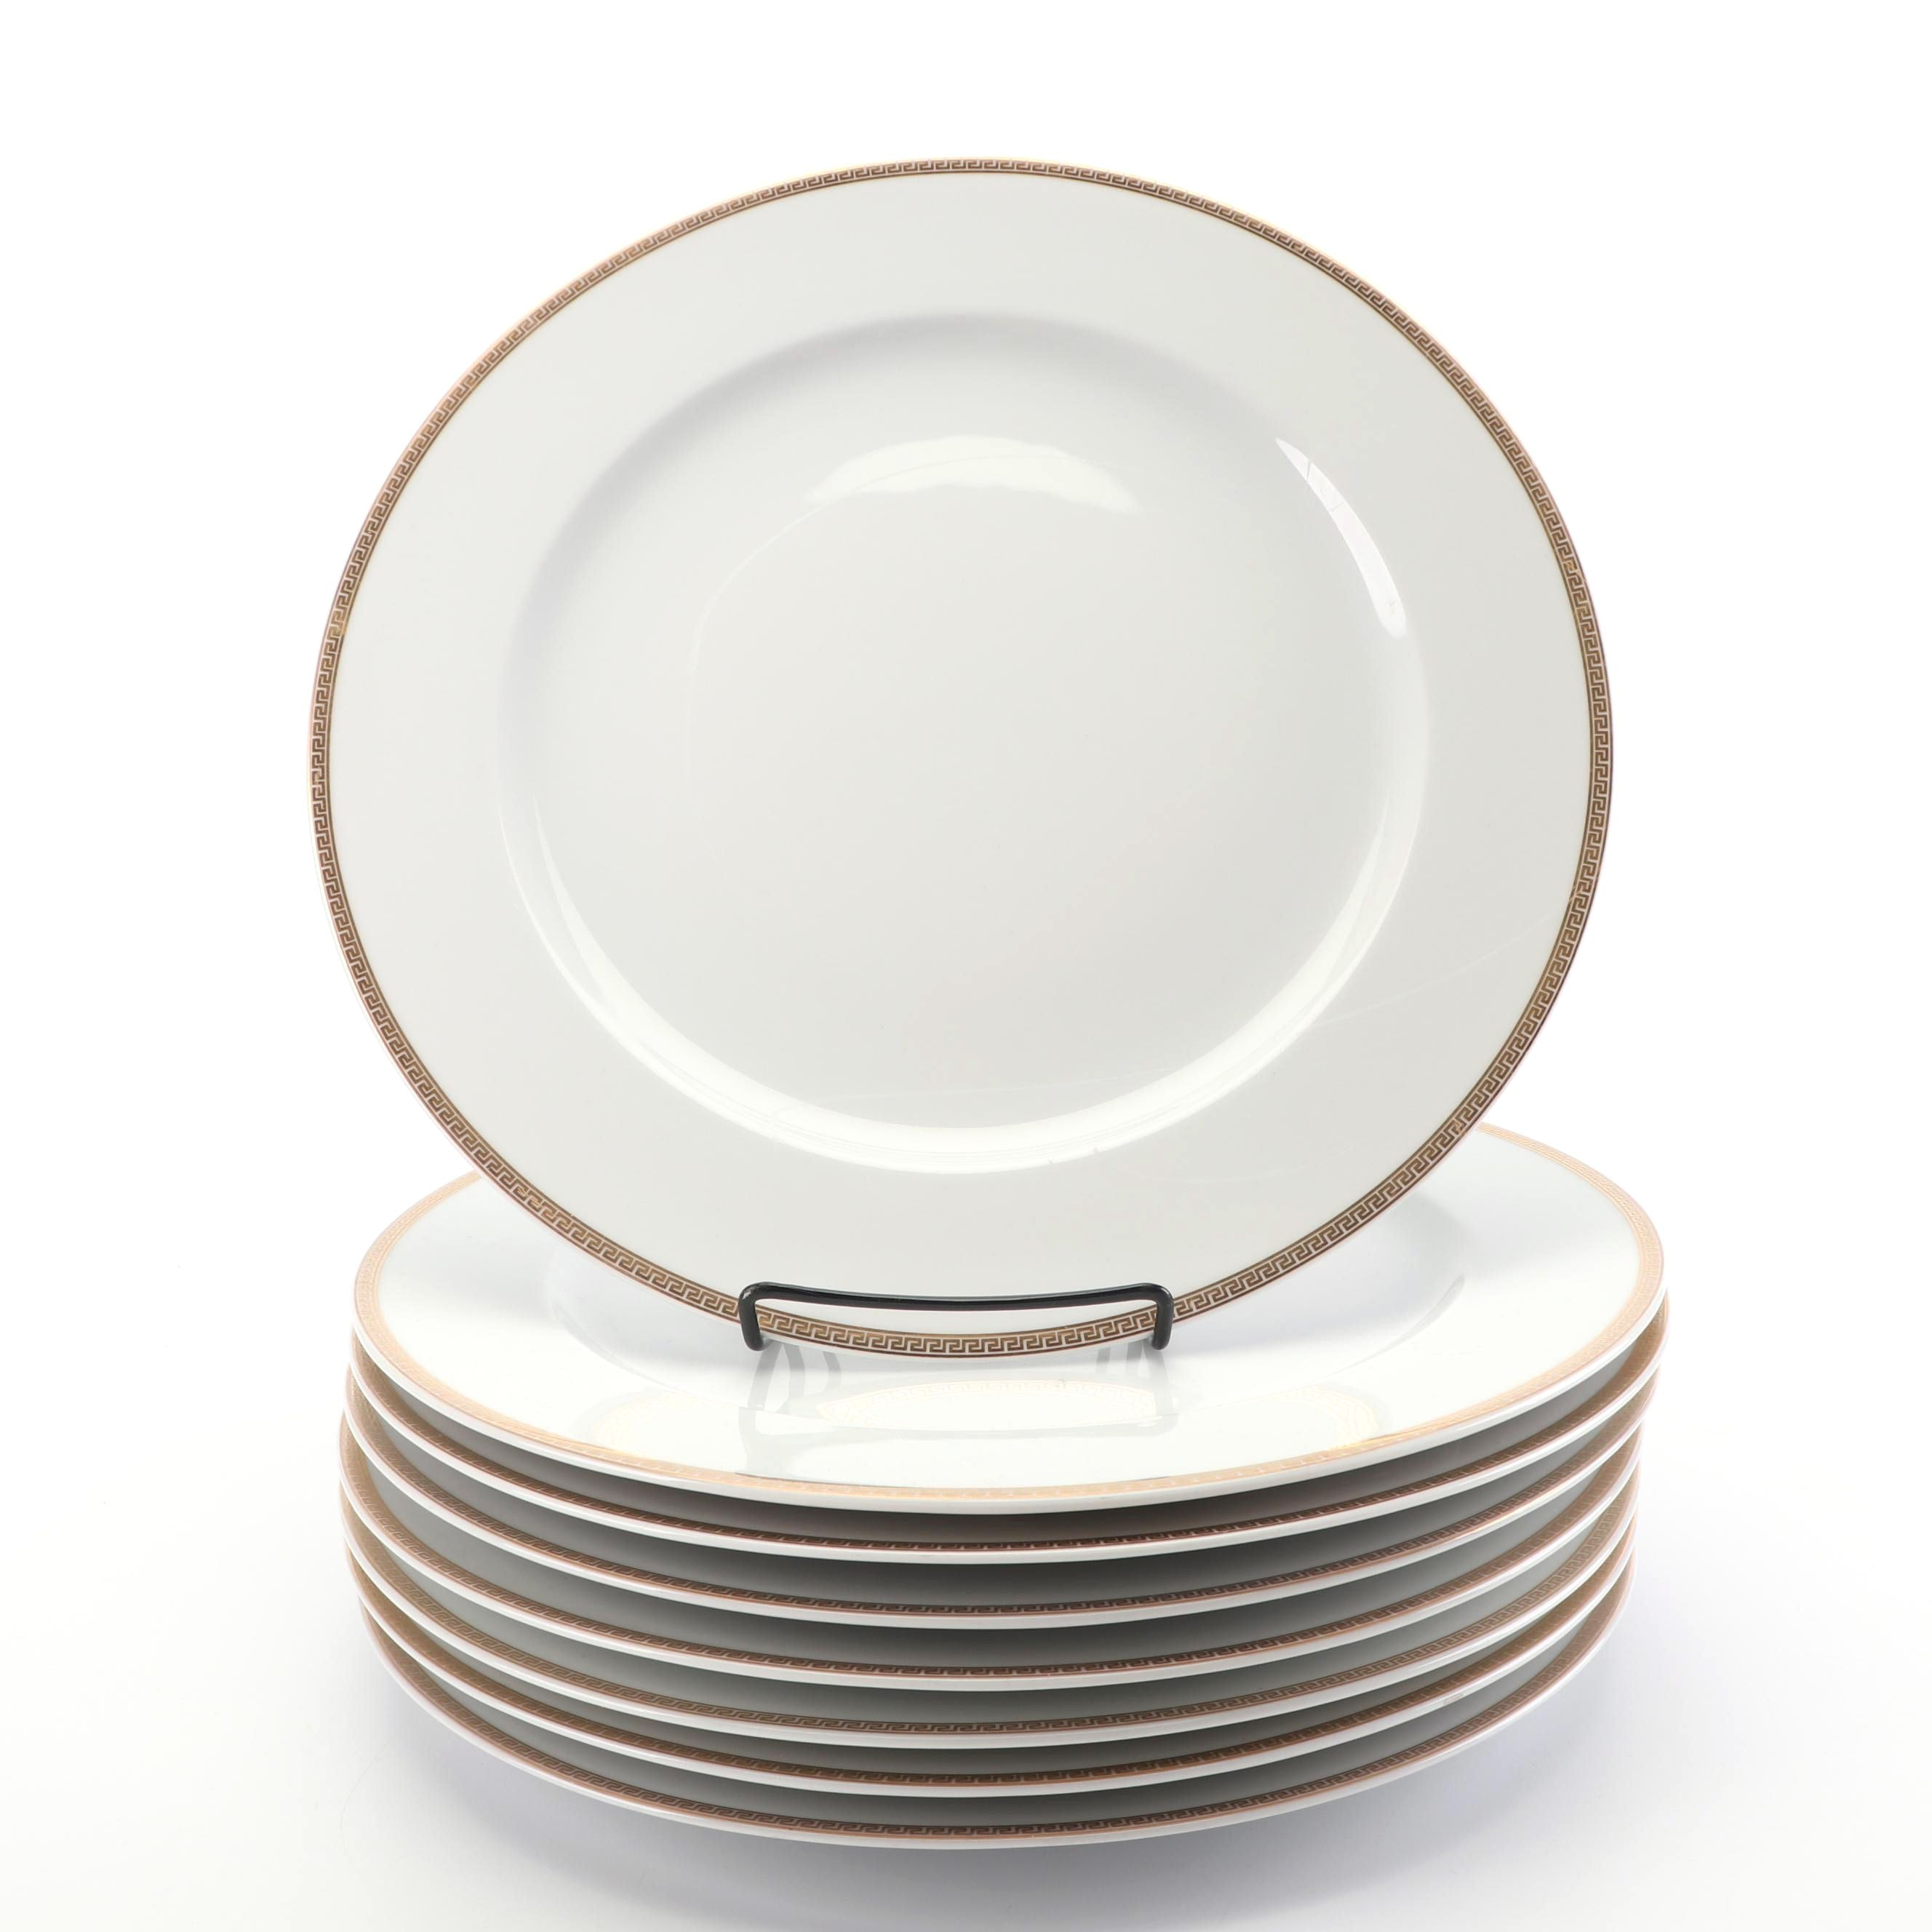 """Versace for Rosenthal """"Medaillon Meandre D'Or"""" Service Plates, Set of Eight"""